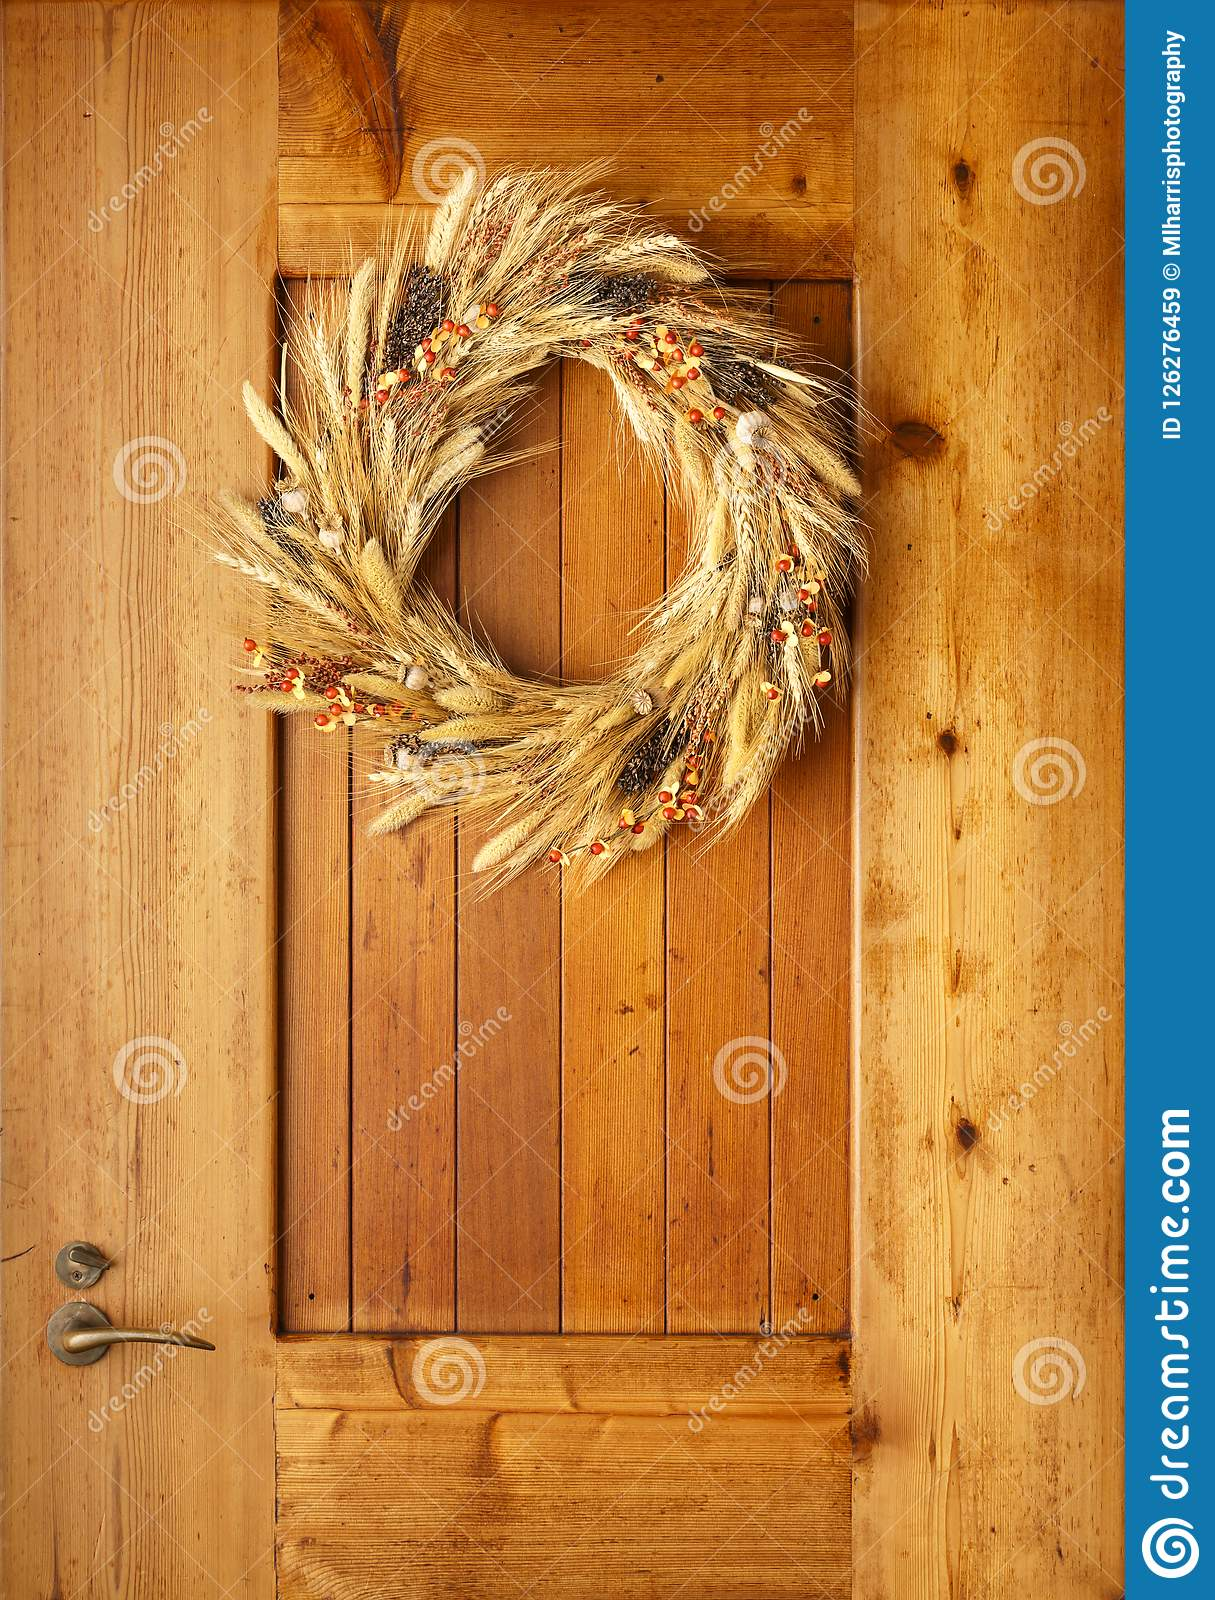 House Home Front Door Fall Autumn Thanksgiving Decorations Country